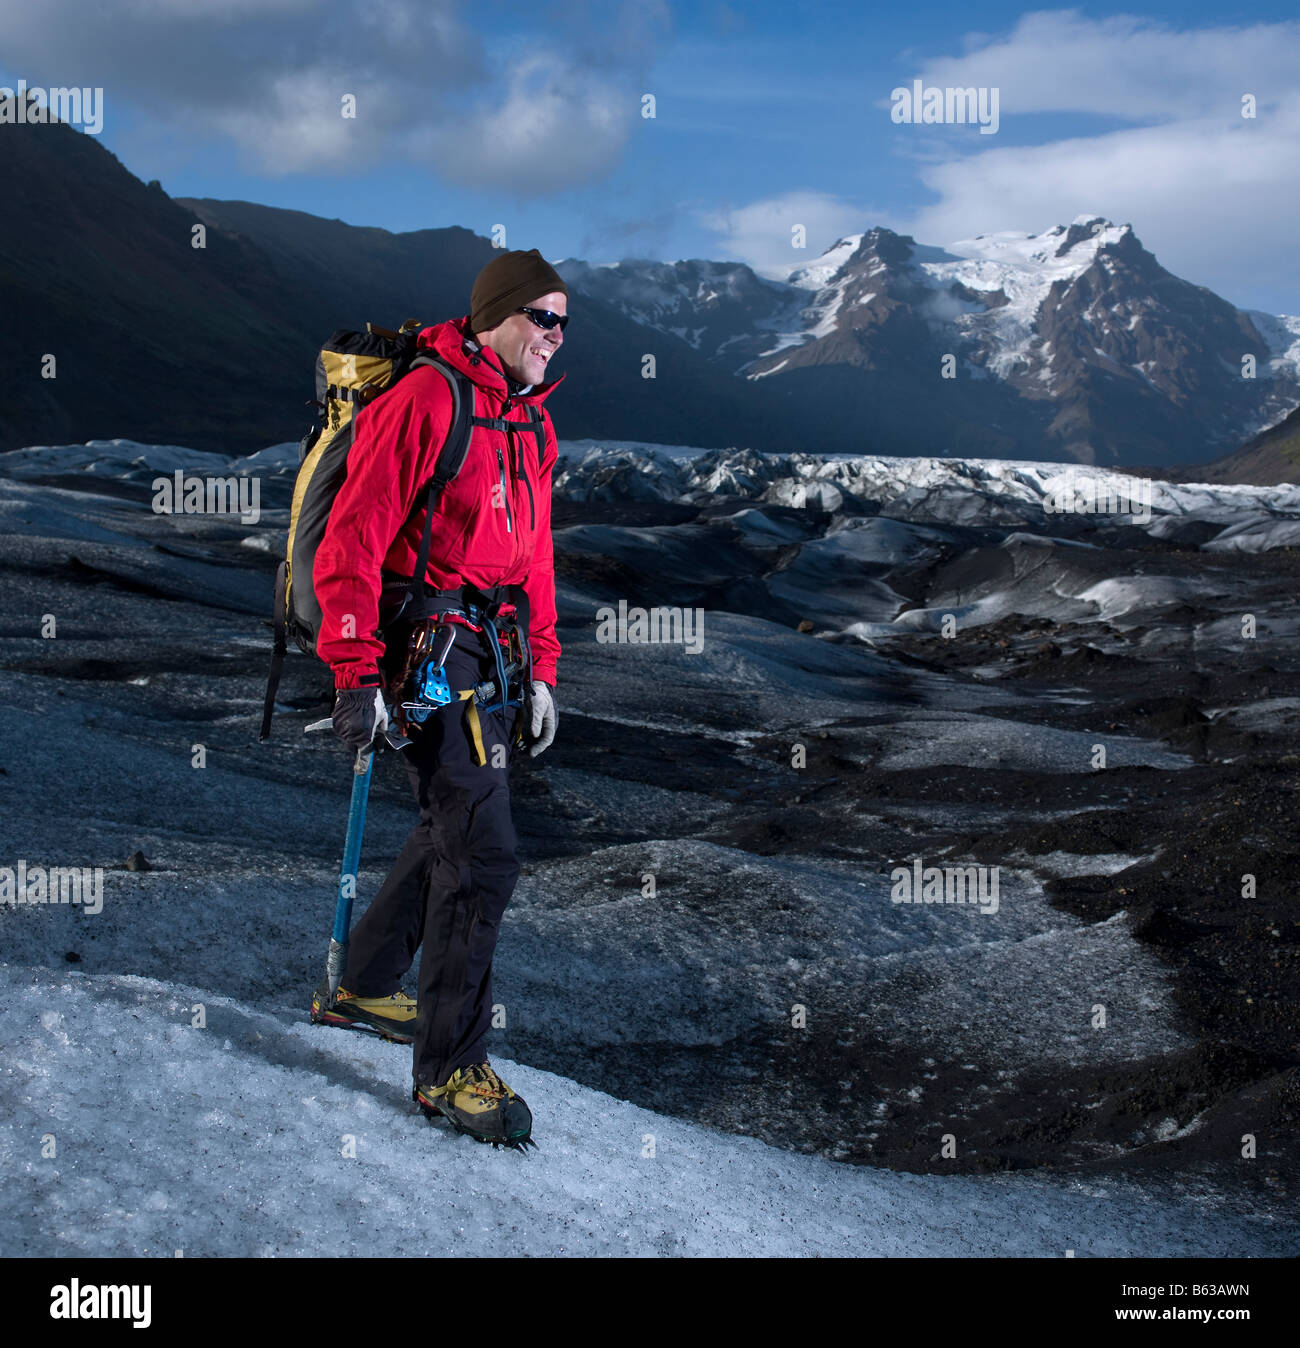 Hiking on Svinafellsjokul Glacier, Eastern Iceland - Stock Image